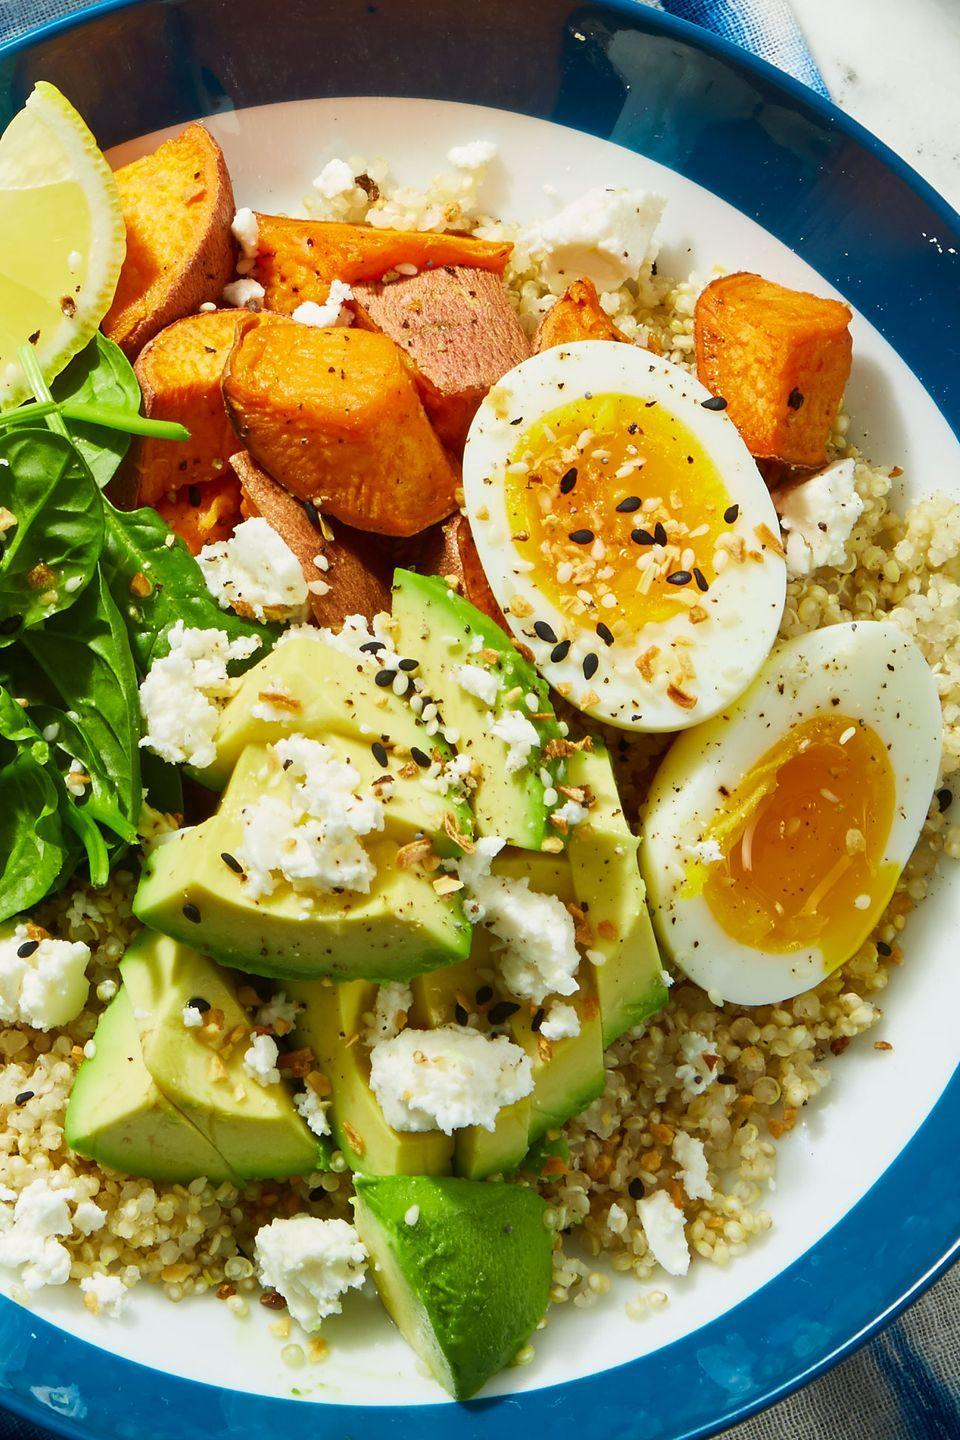 """<p>What's a breakfast bowl without avocado? </p><p>Get the recipe from <a href=""""https://www.delish.com/cooking/recipe-ideas/a25621755/avocado-breakfast-bowls-recipe/"""" rel=""""nofollow noopener"""" target=""""_blank"""" data-ylk=""""slk:Delish"""" class=""""link rapid-noclick-resp"""">Delish</a>.</p>"""